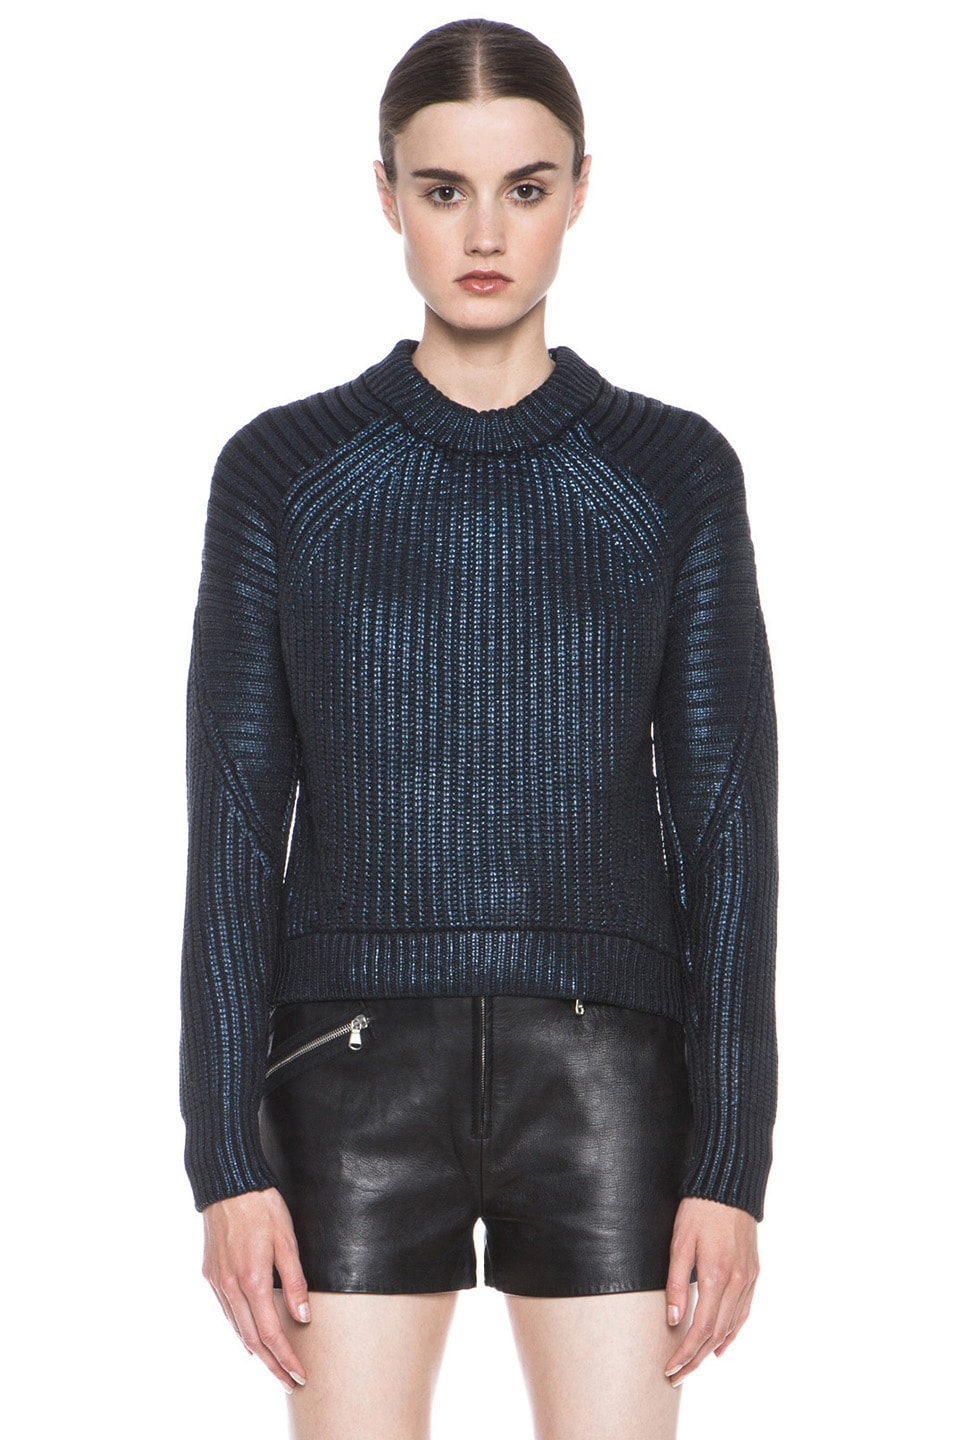 Image 1 of 3.1 phillip lim Metallic Printed Mixed Stitch Detail Knit Pullover in Sapphire